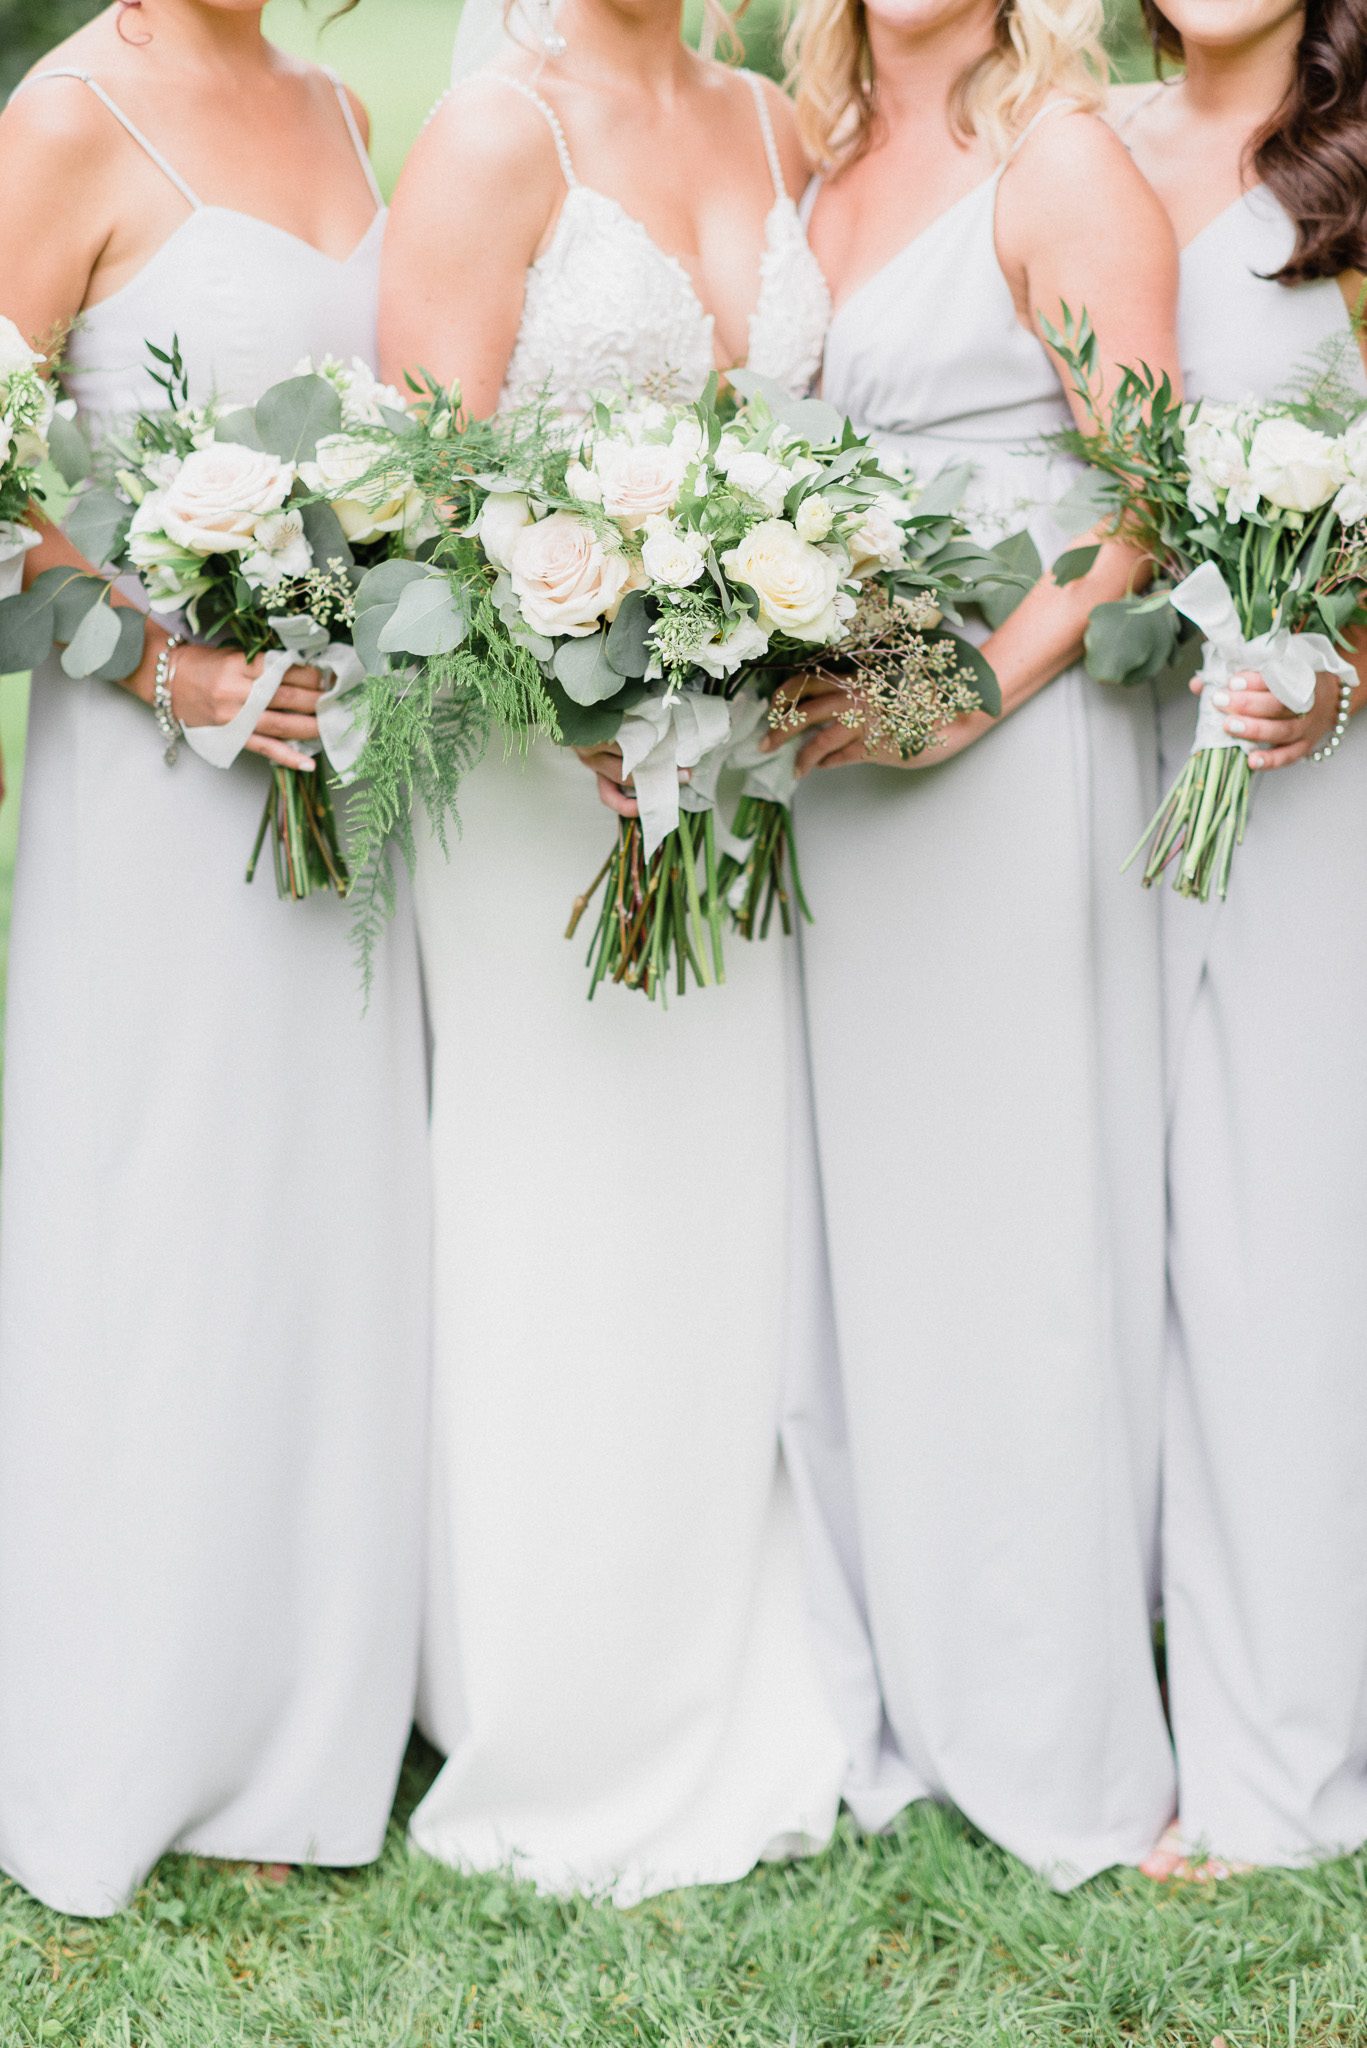 Dove Grey Park & Fifth Co bridesmaids dresses by Jenn Kavanagh Photography